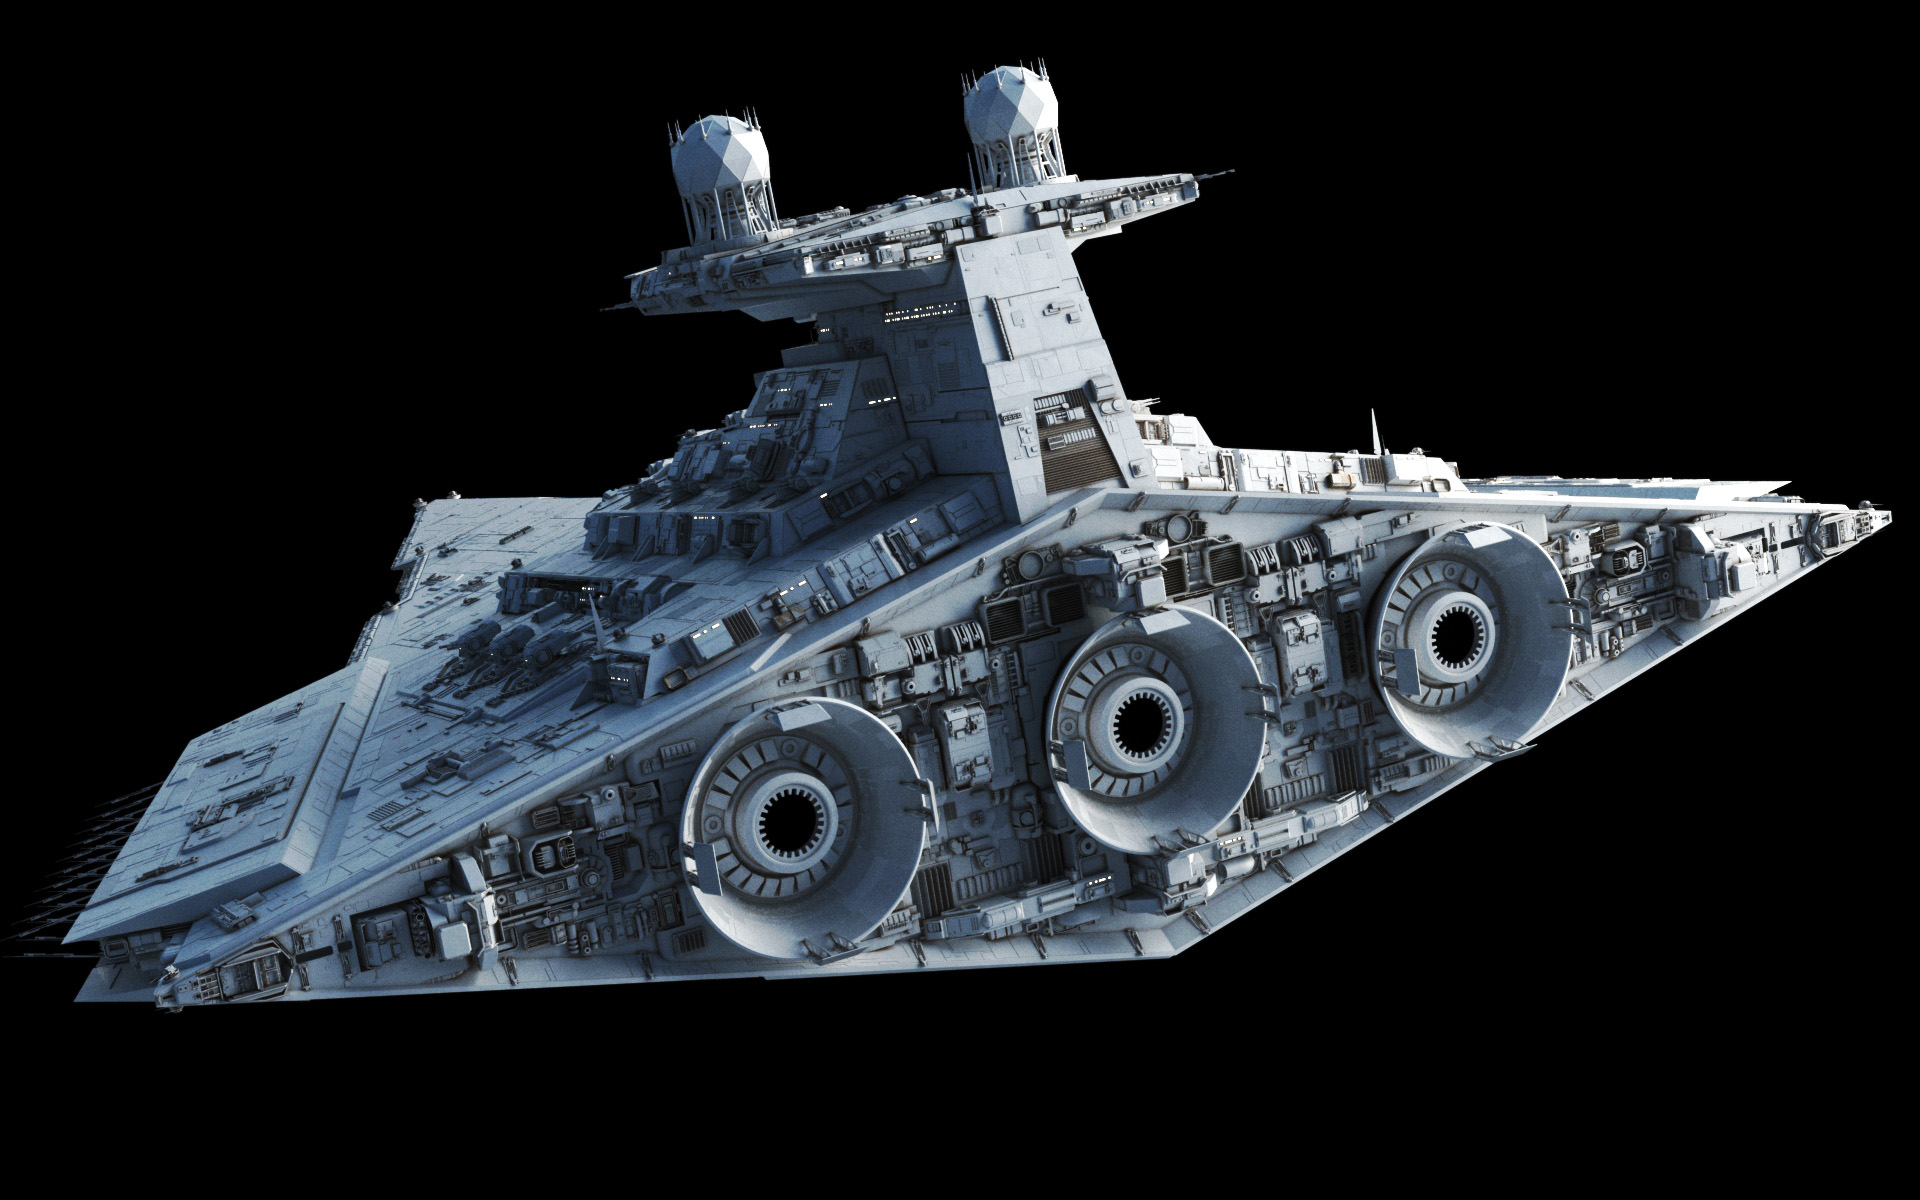 By Fractalsponge | Posted In: Capital Ship, Galactic Empire, Gallery, Star  Wars | 52